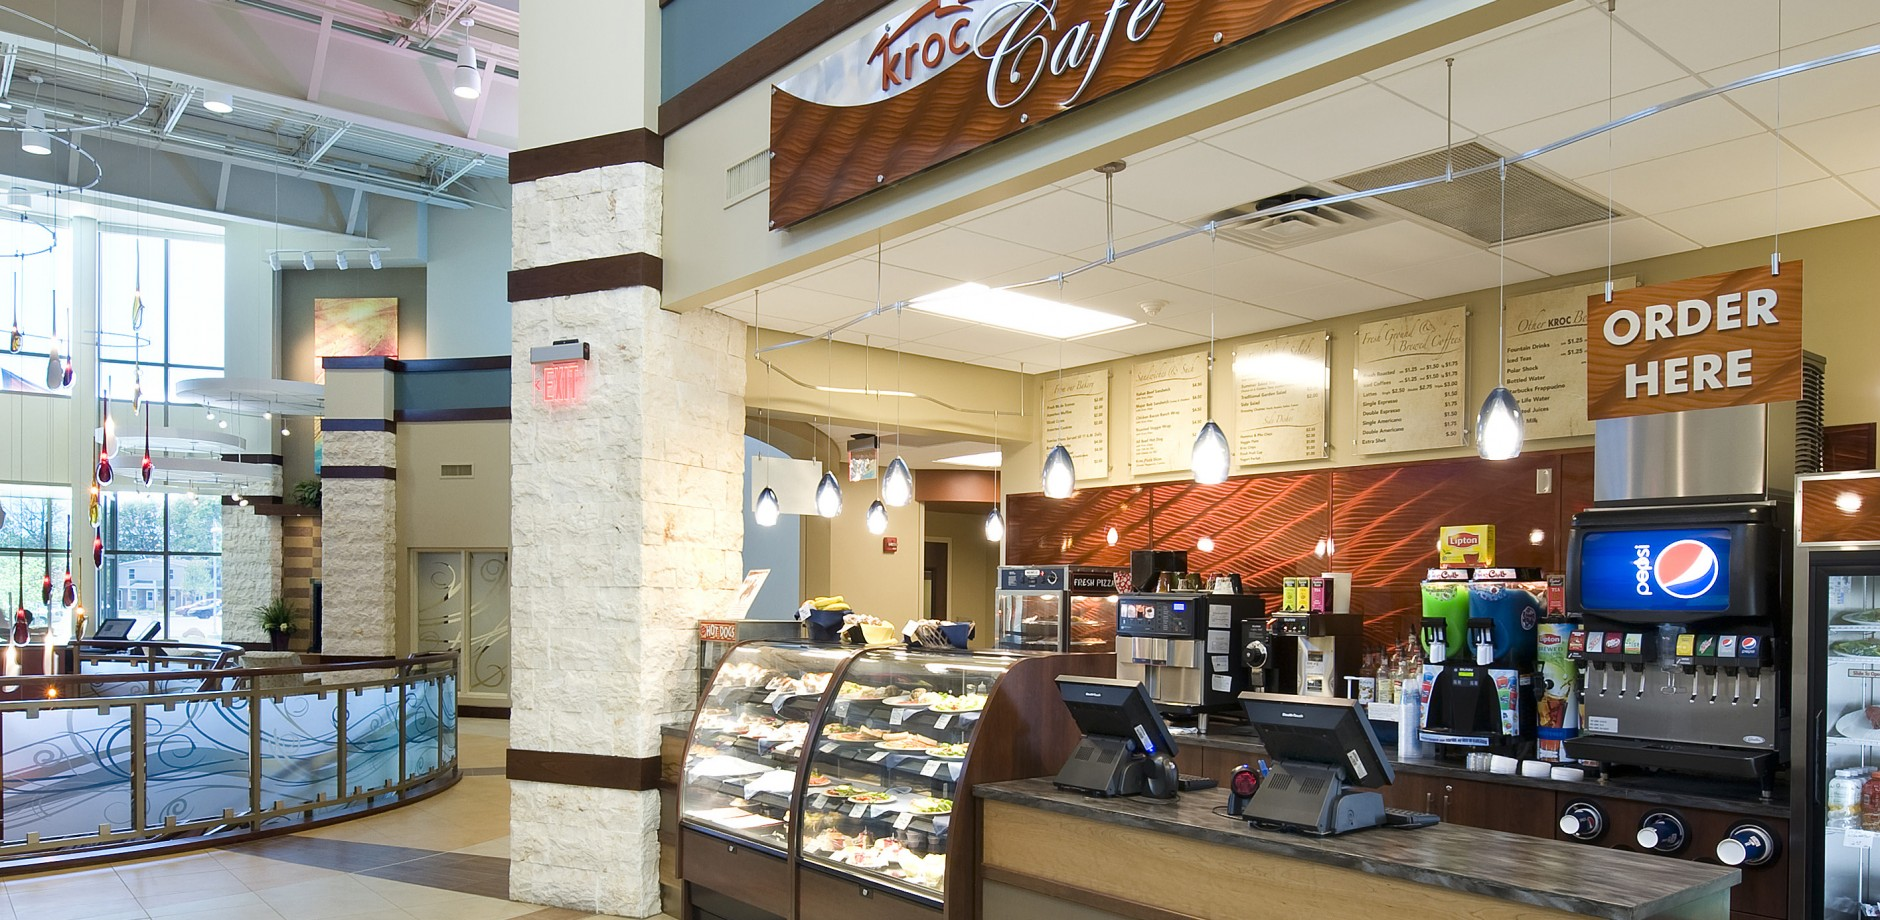 Delicious and Nutritious treats at the Kroc Cafe, Kroc Center, South Bend IN.